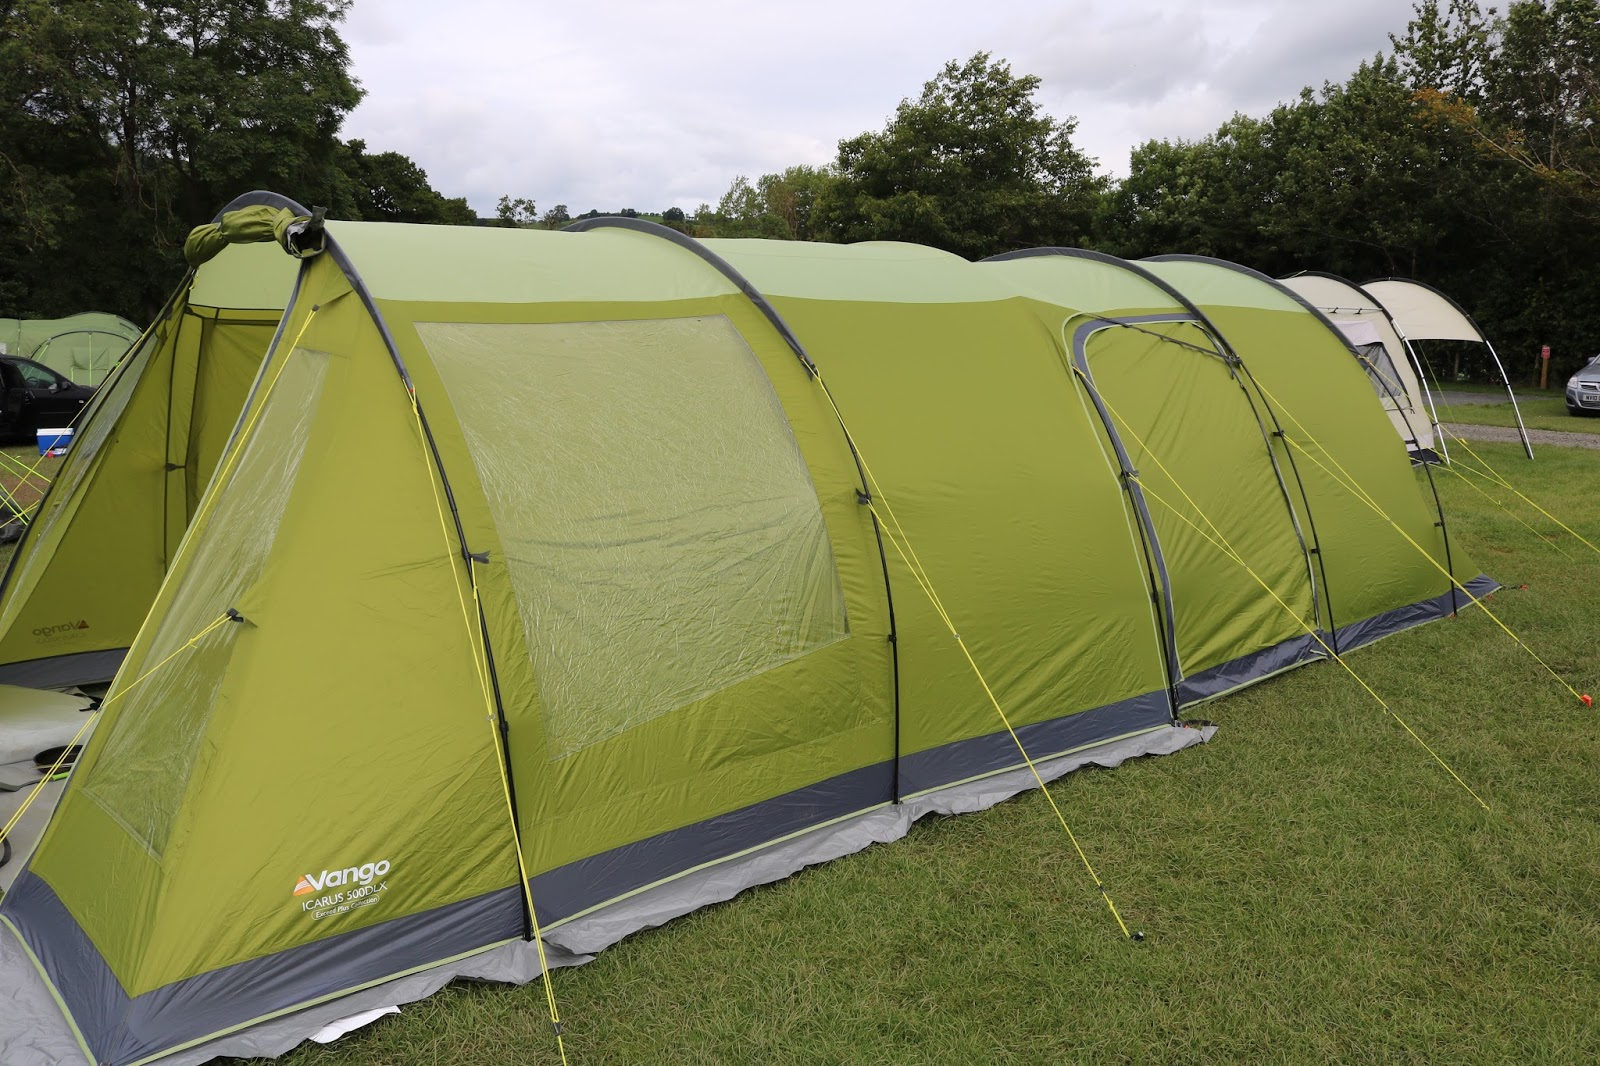 The Tent Itself Is GBP199 In Sale But We Got Bundle Which Included Carpet Foot Print And Canopy Awning For GBP375